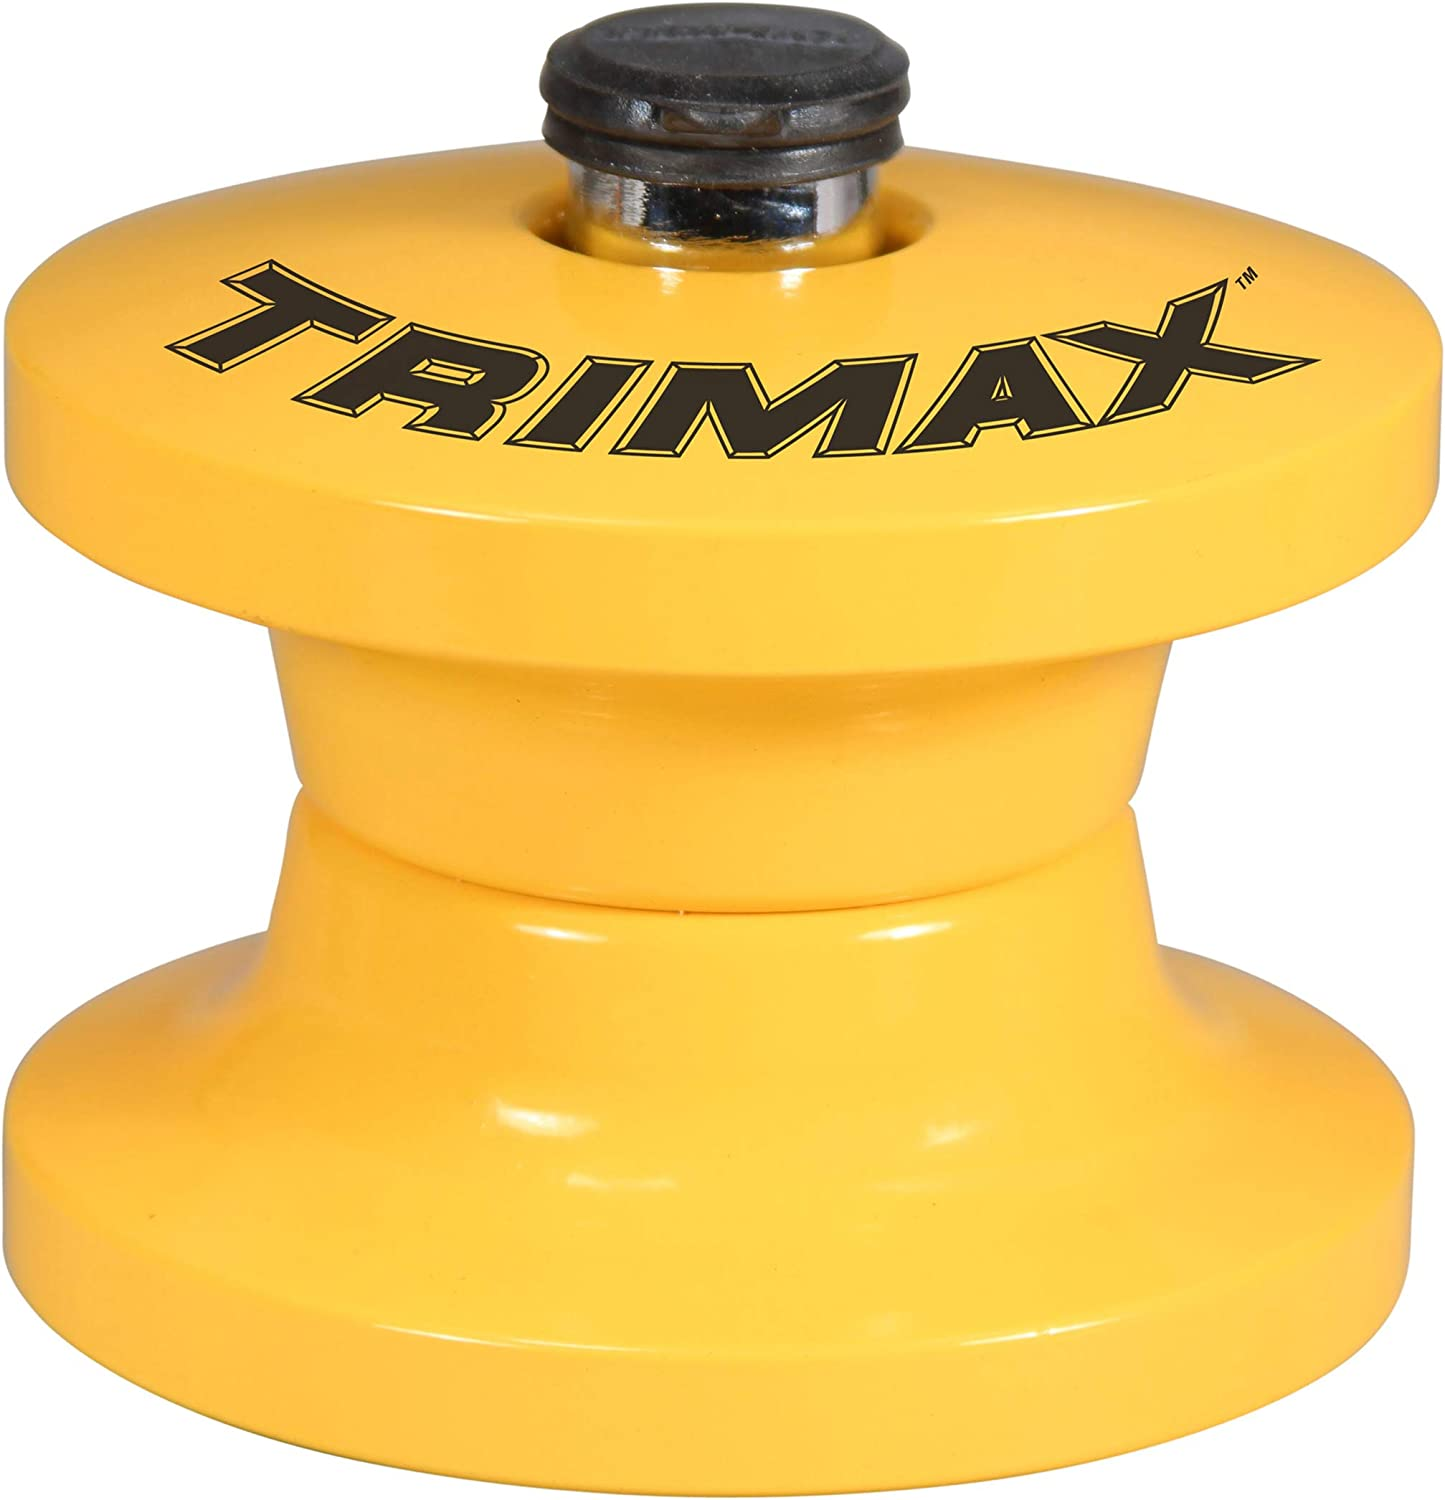 2-7//8-Inch Inside Diameter Trimax TLR51 Lunette Tow Ring Lock for Unattended Pintle Hook Trailers